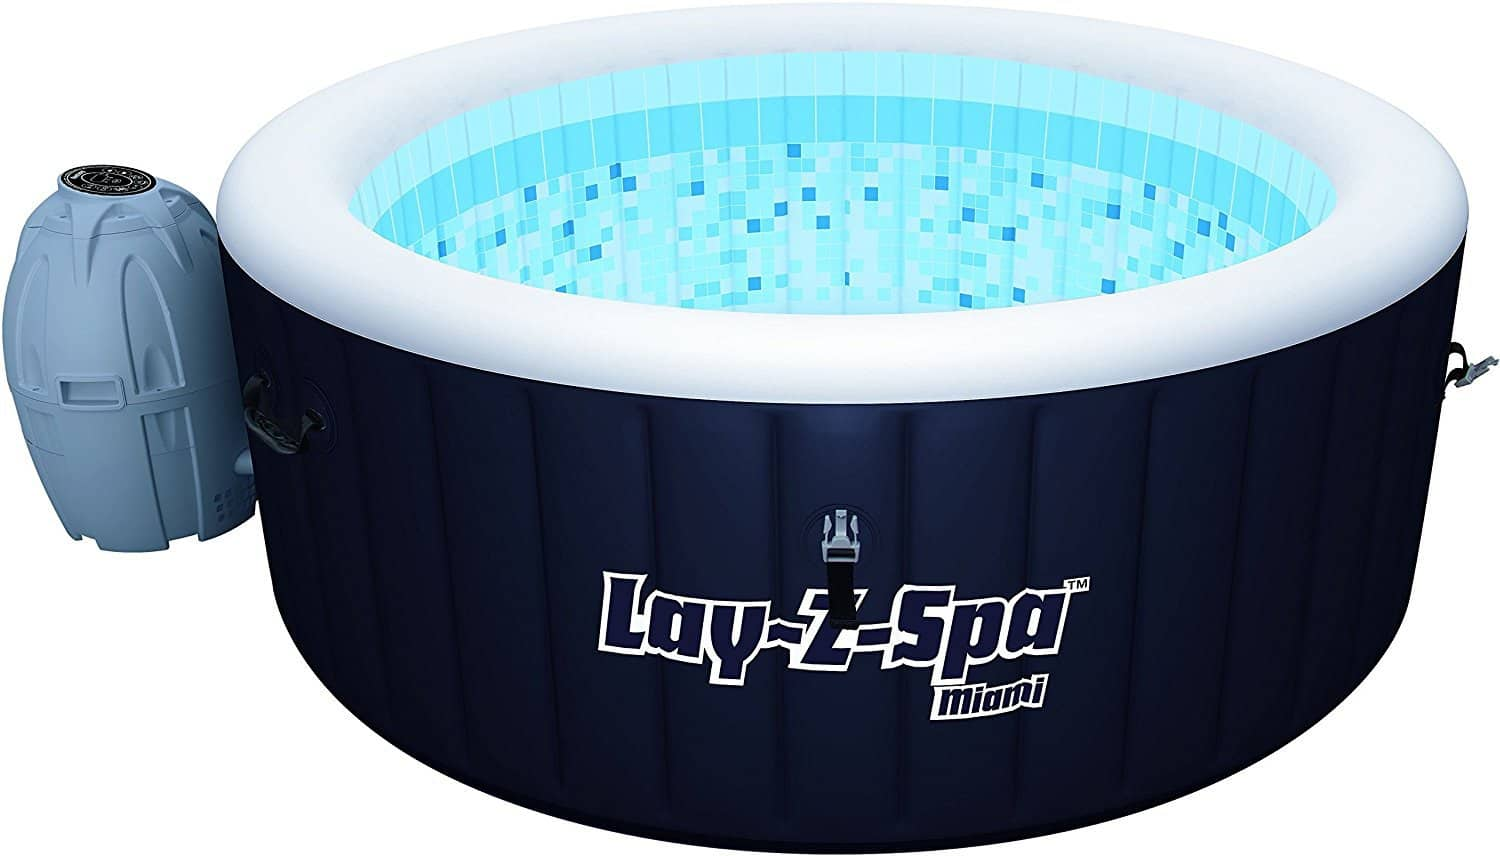 Bestway Pools The Range Best Inflatable Hot Tub Reviews 8 Of The Best Models For